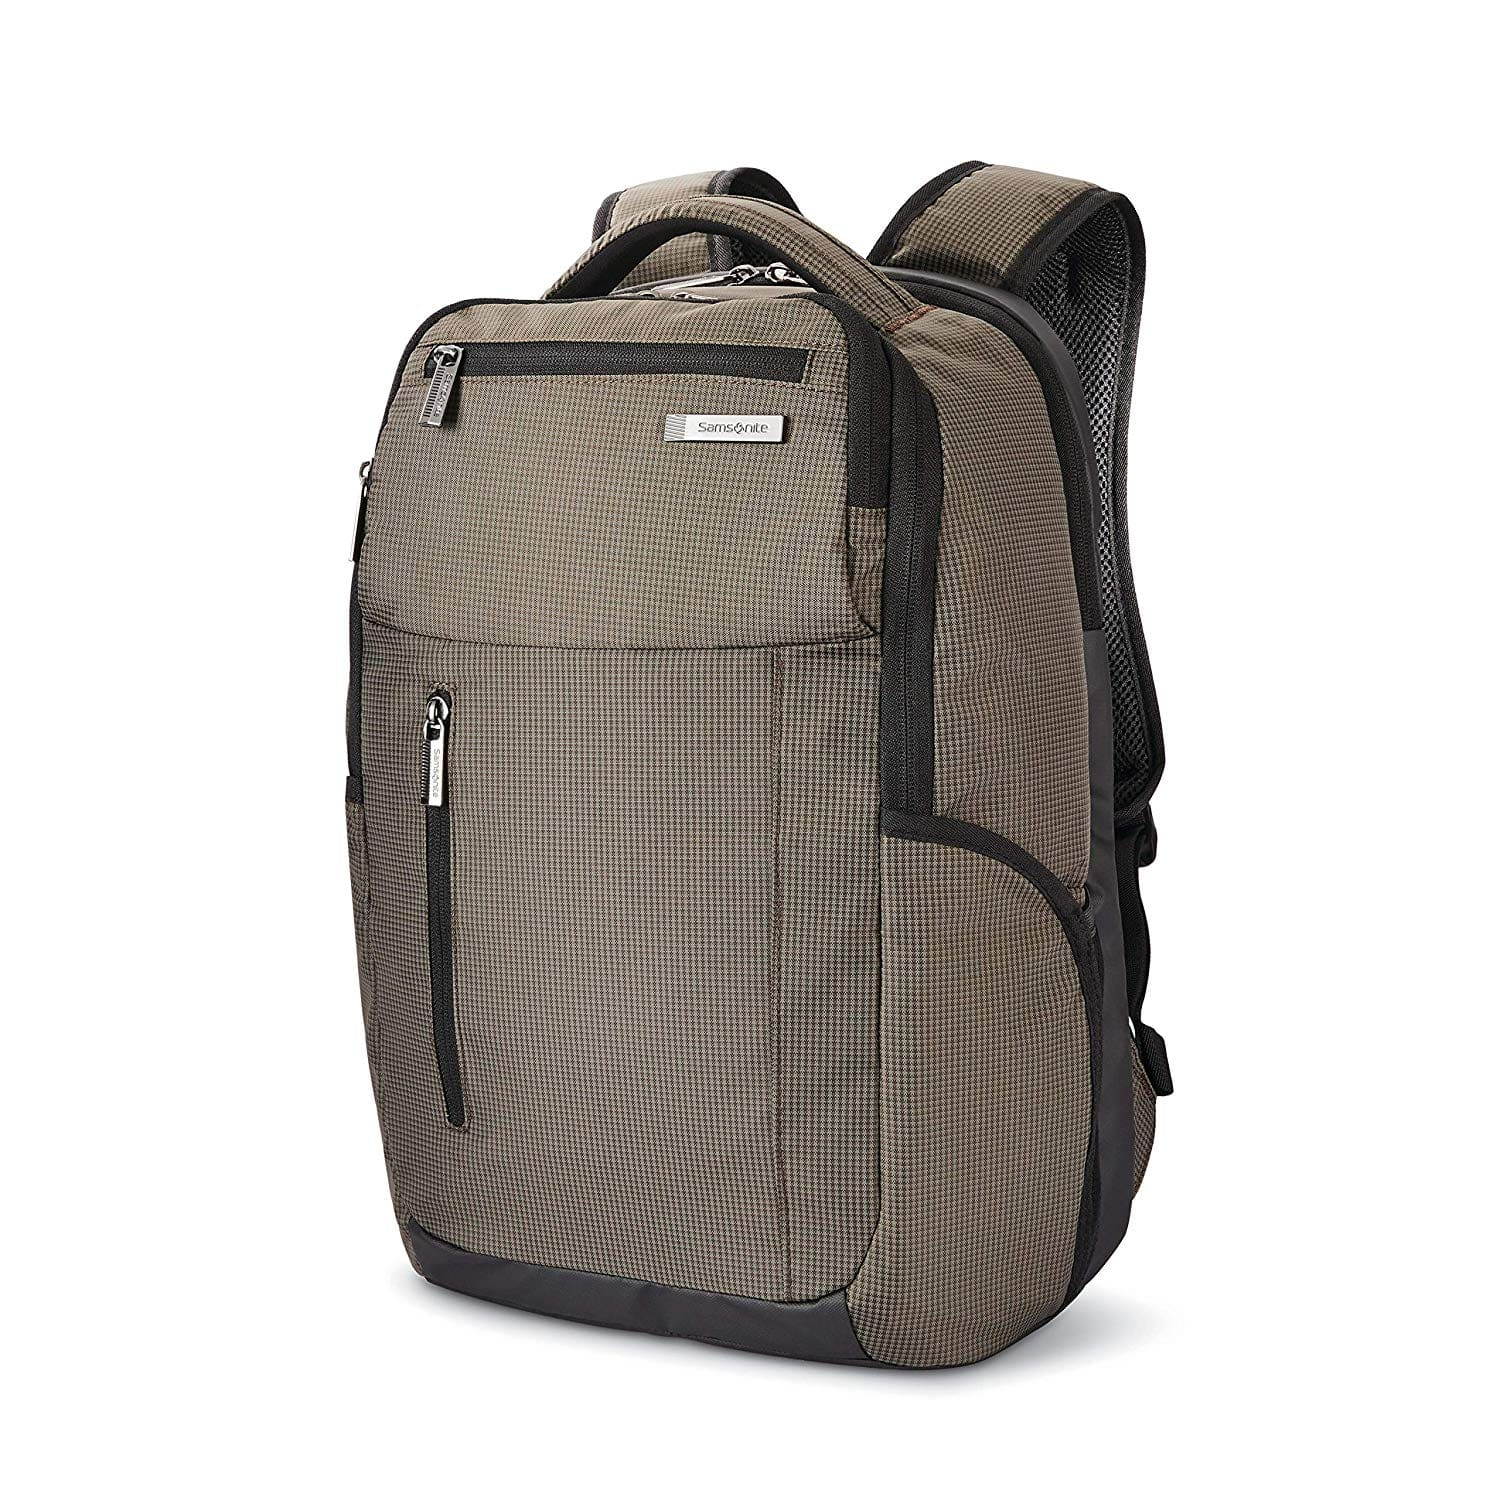 Samsonite Tectonic Lifestyle Crossfire Business Backpack, Green/Black - $29.39, free shipping w/ Prime